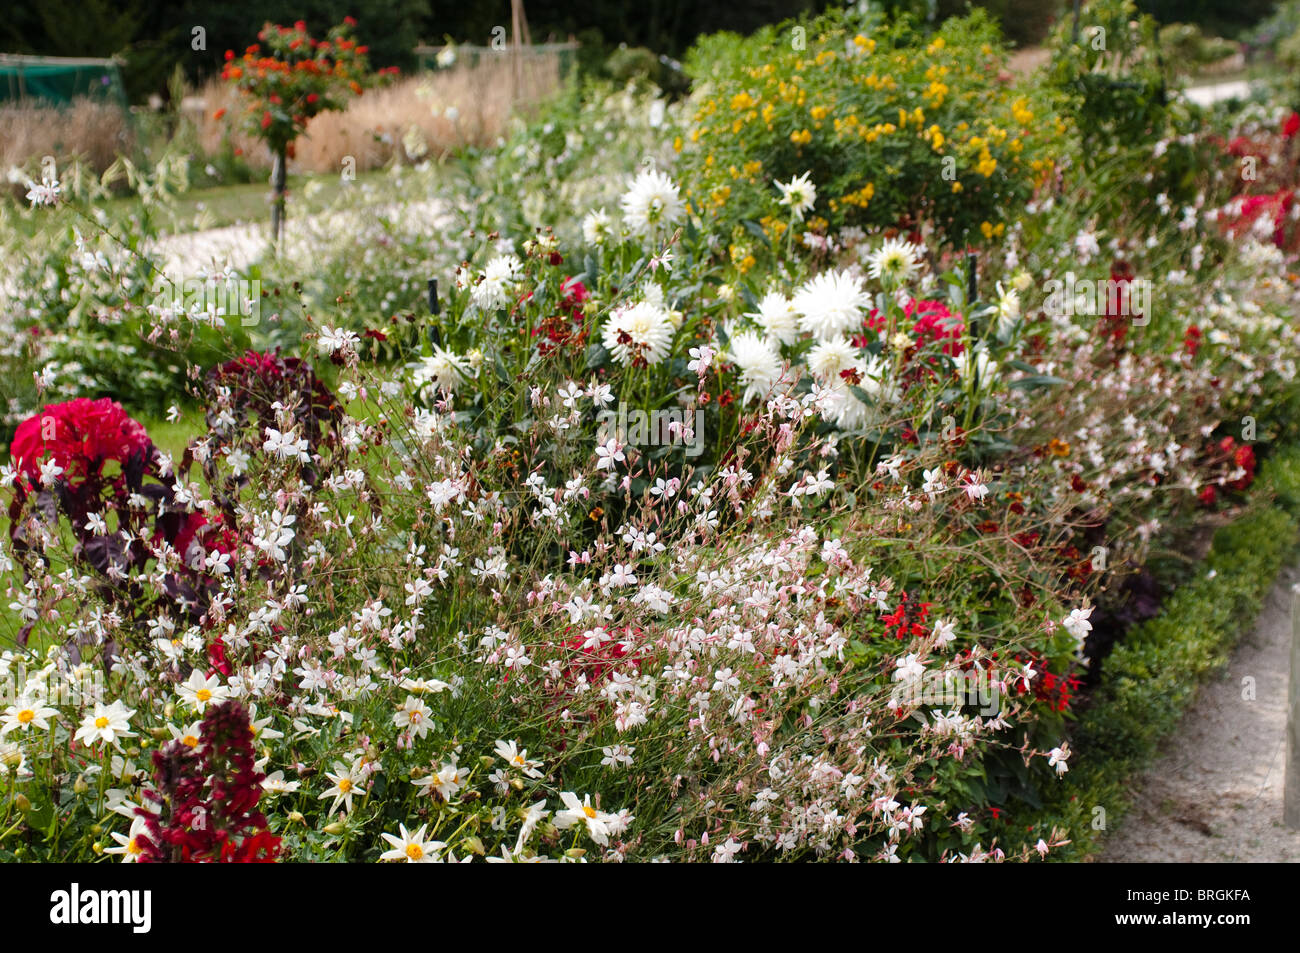 Mixed border with Gaura lindheimeri and dahlias - Stock Image